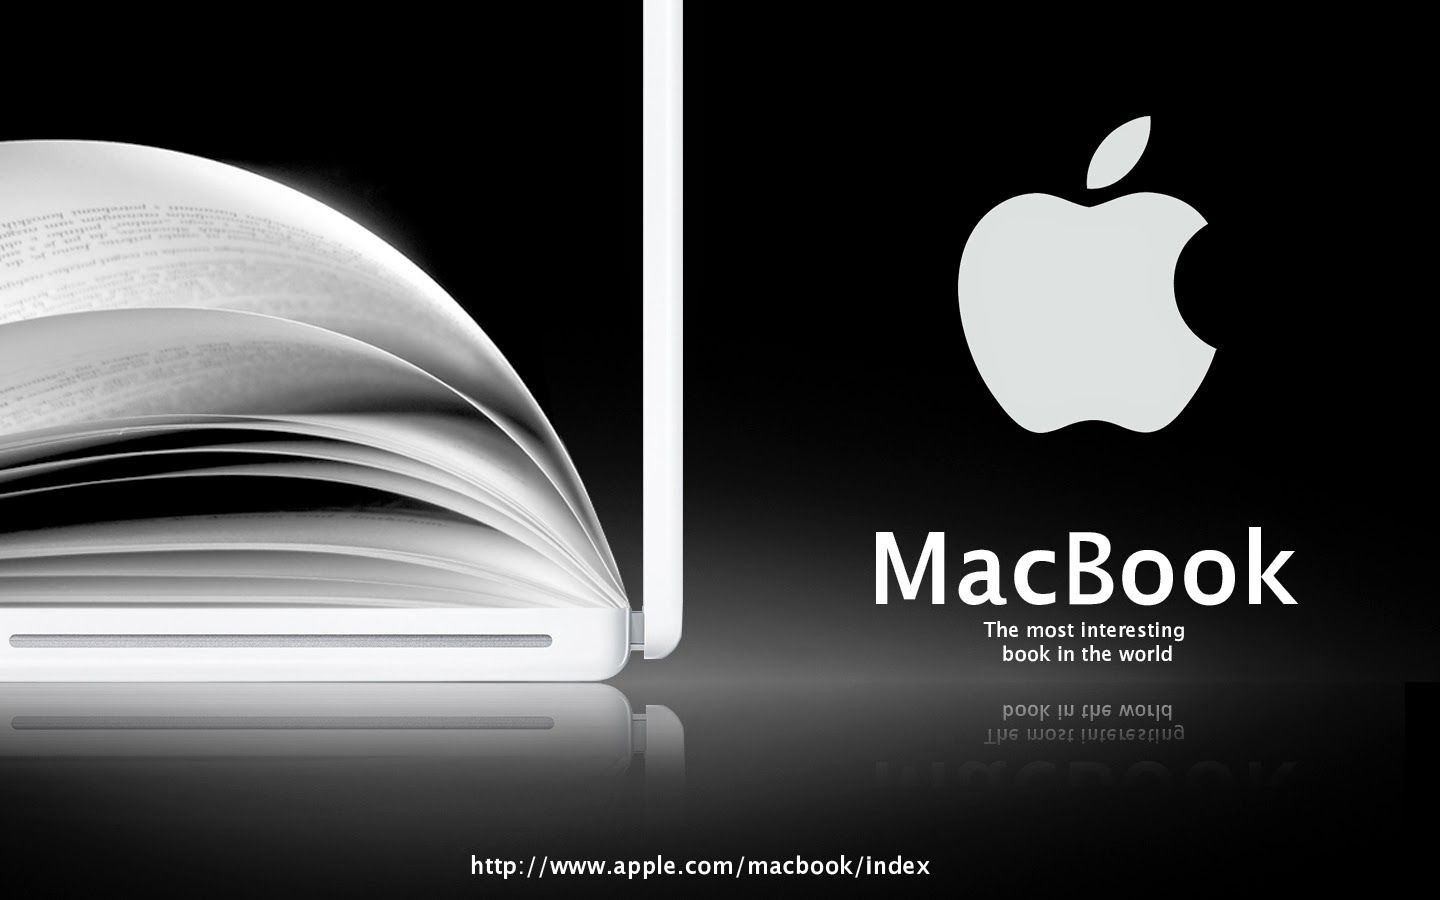 The most interesting examples of advertising creative